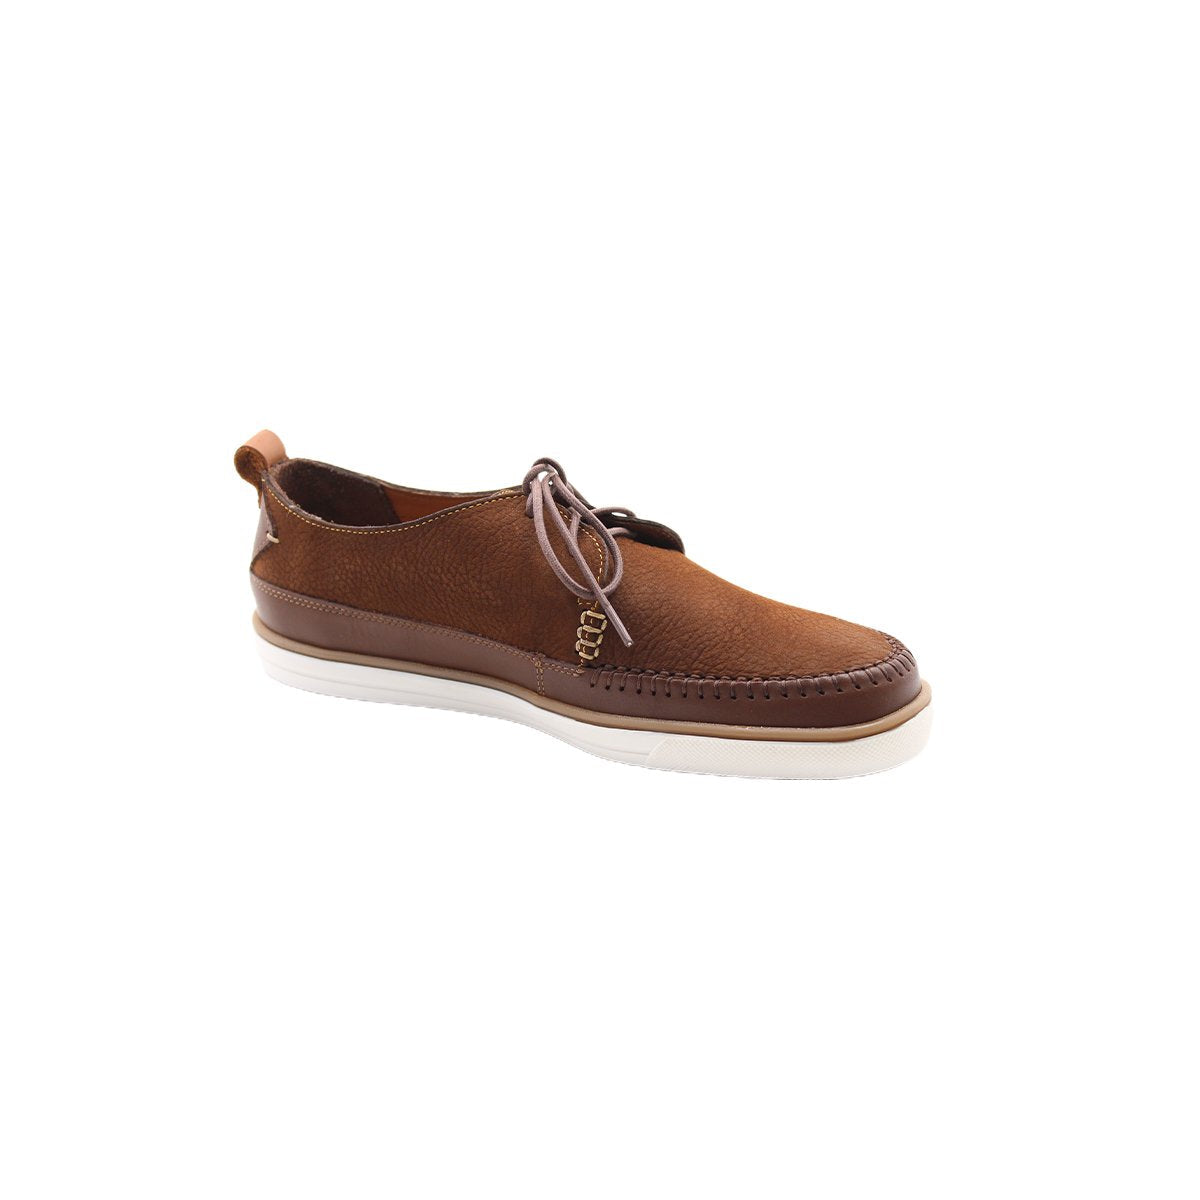 zapato casual edward  - color cafe, 49995, all day comfort, cafe, calzado, cuero, fase 5, hombre, hush puppies, precio regular comprar, en linea, online, delivery, Honduras, zapatos